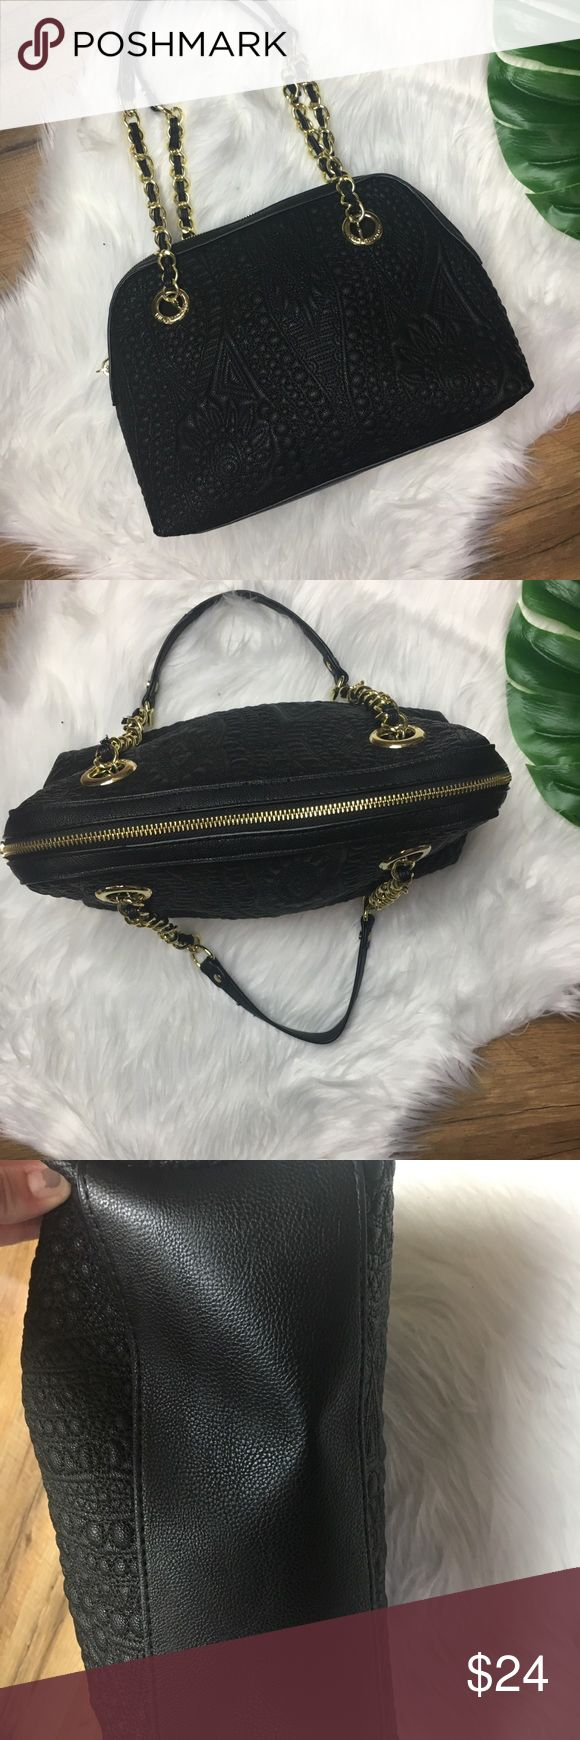 Medium Big Buddha Bag Medium Big Buddha Bag  Black with Gold embellishments Measurements are in photos Excellent Condition Big Buddha Bags Shoulder Bags